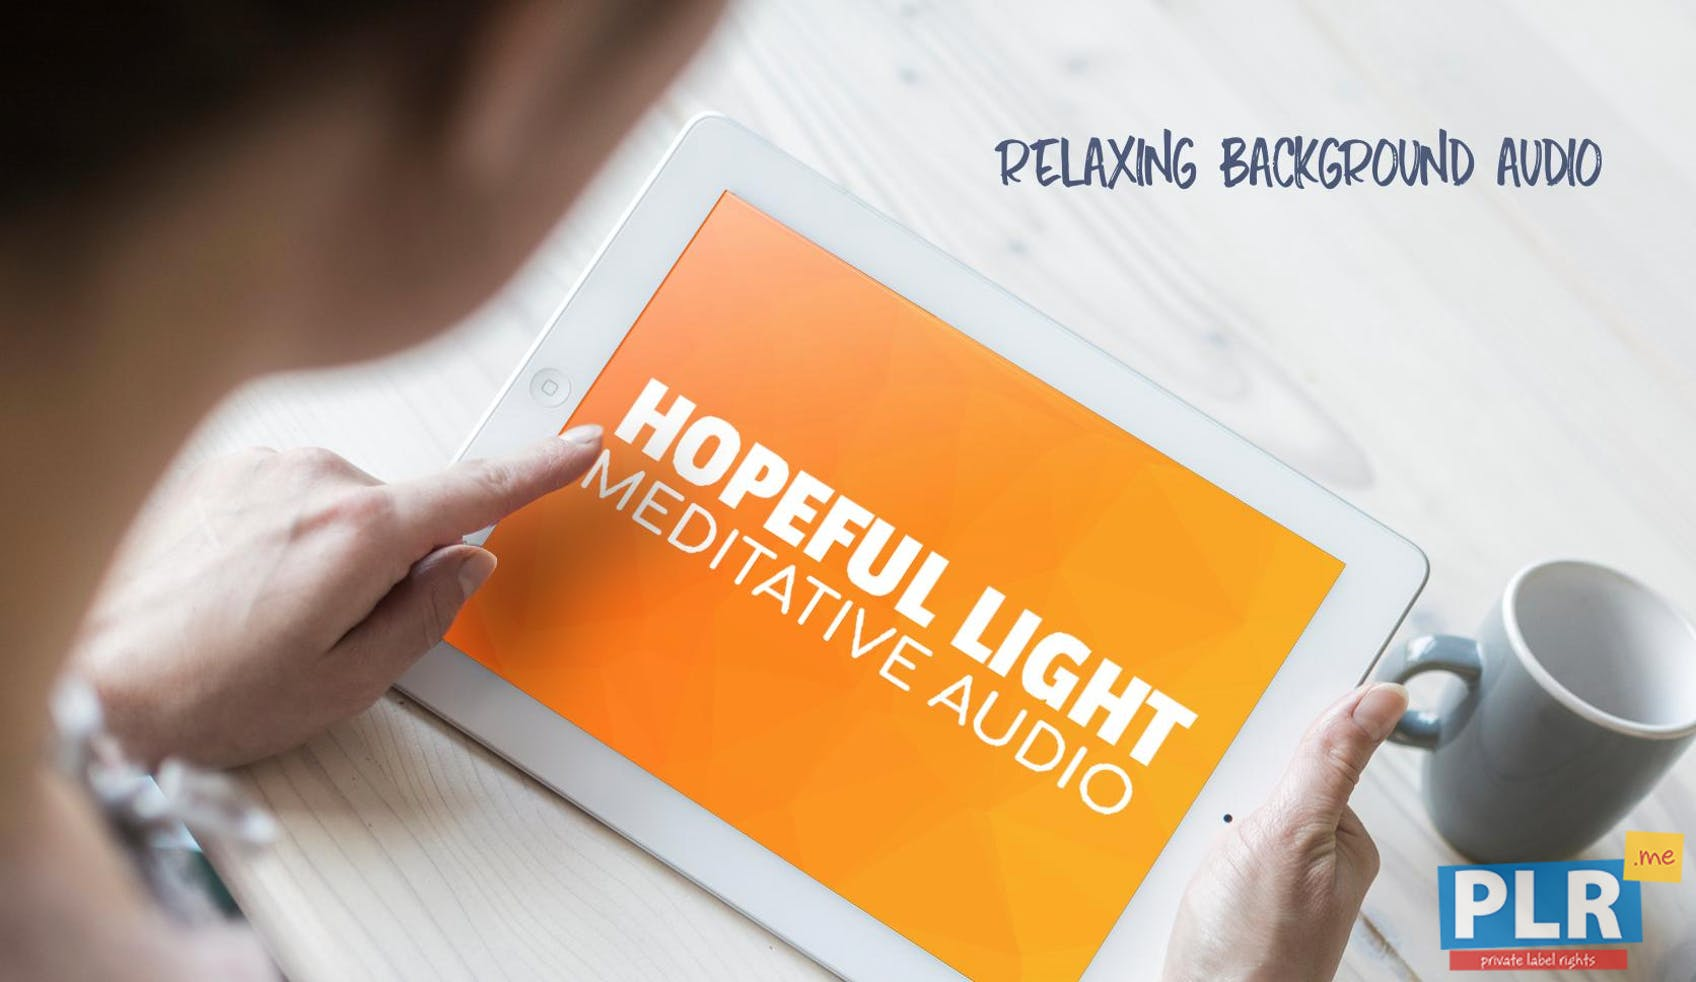 Hopeful Light - Meditative Audio